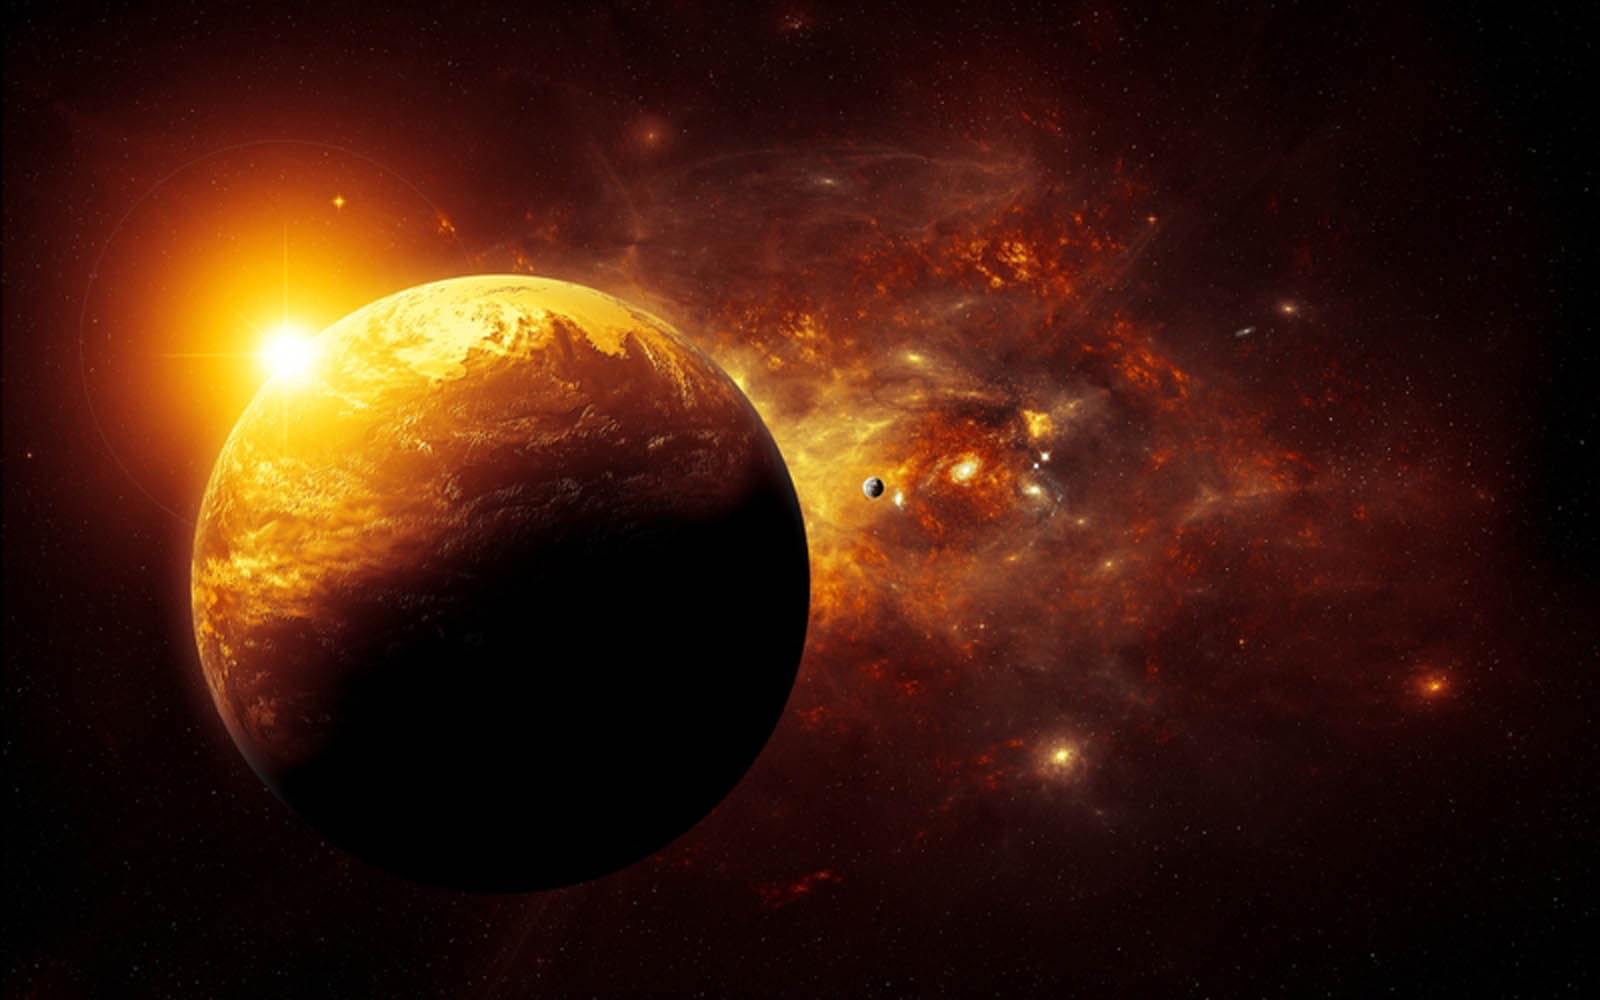 3d planets wallpaper hd - photo #11